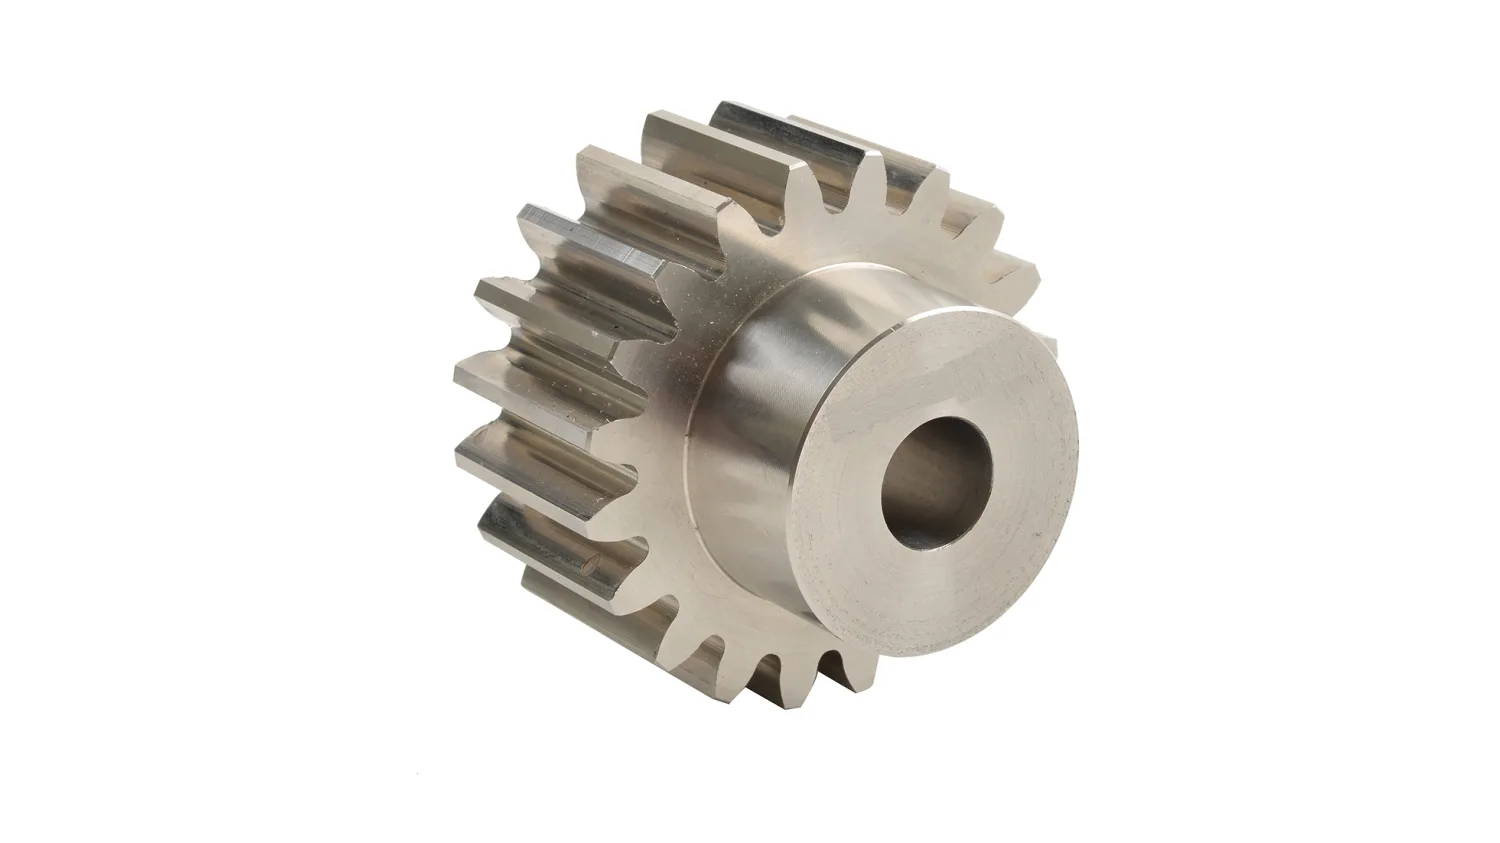 1-25-Mod-x-19-Tooth-Metric-Spur-Gear-in-Steel